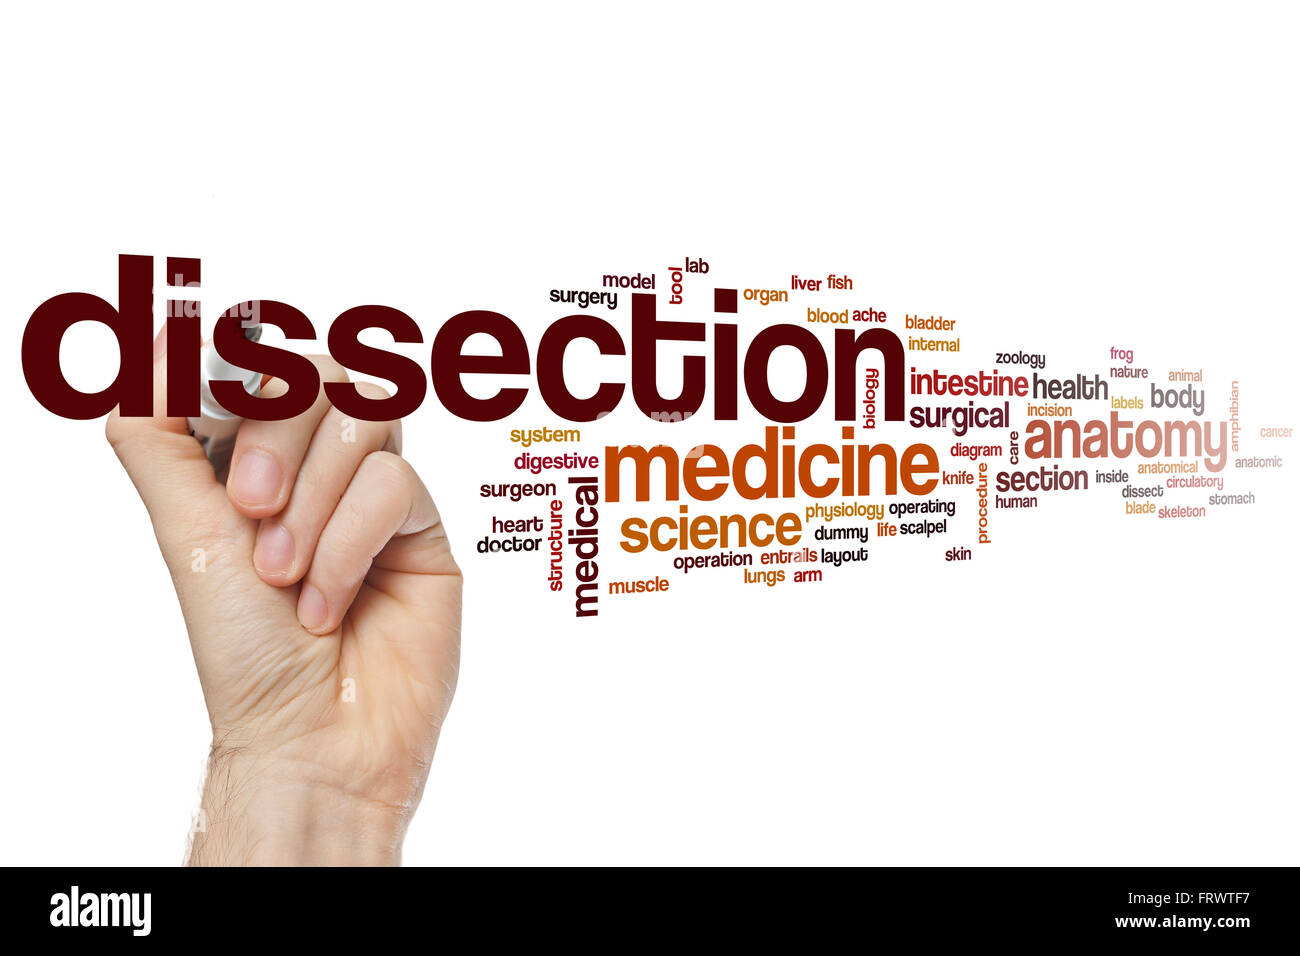 Human Heart Dissection Stock Photos & Human Heart Dissection Stock ...